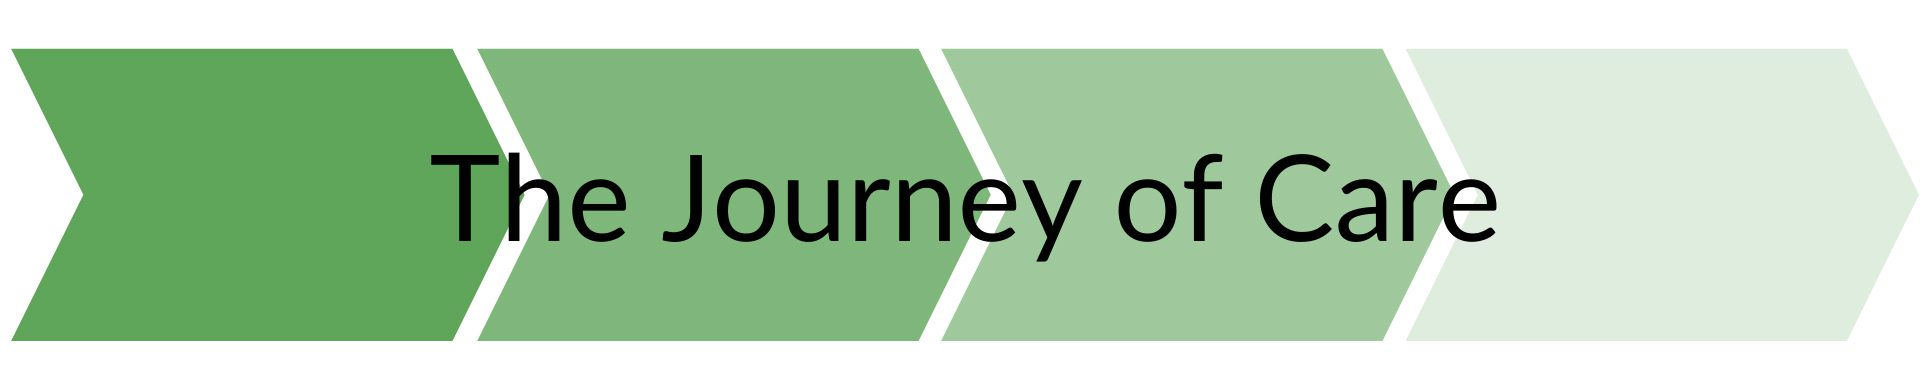 Journey of Care